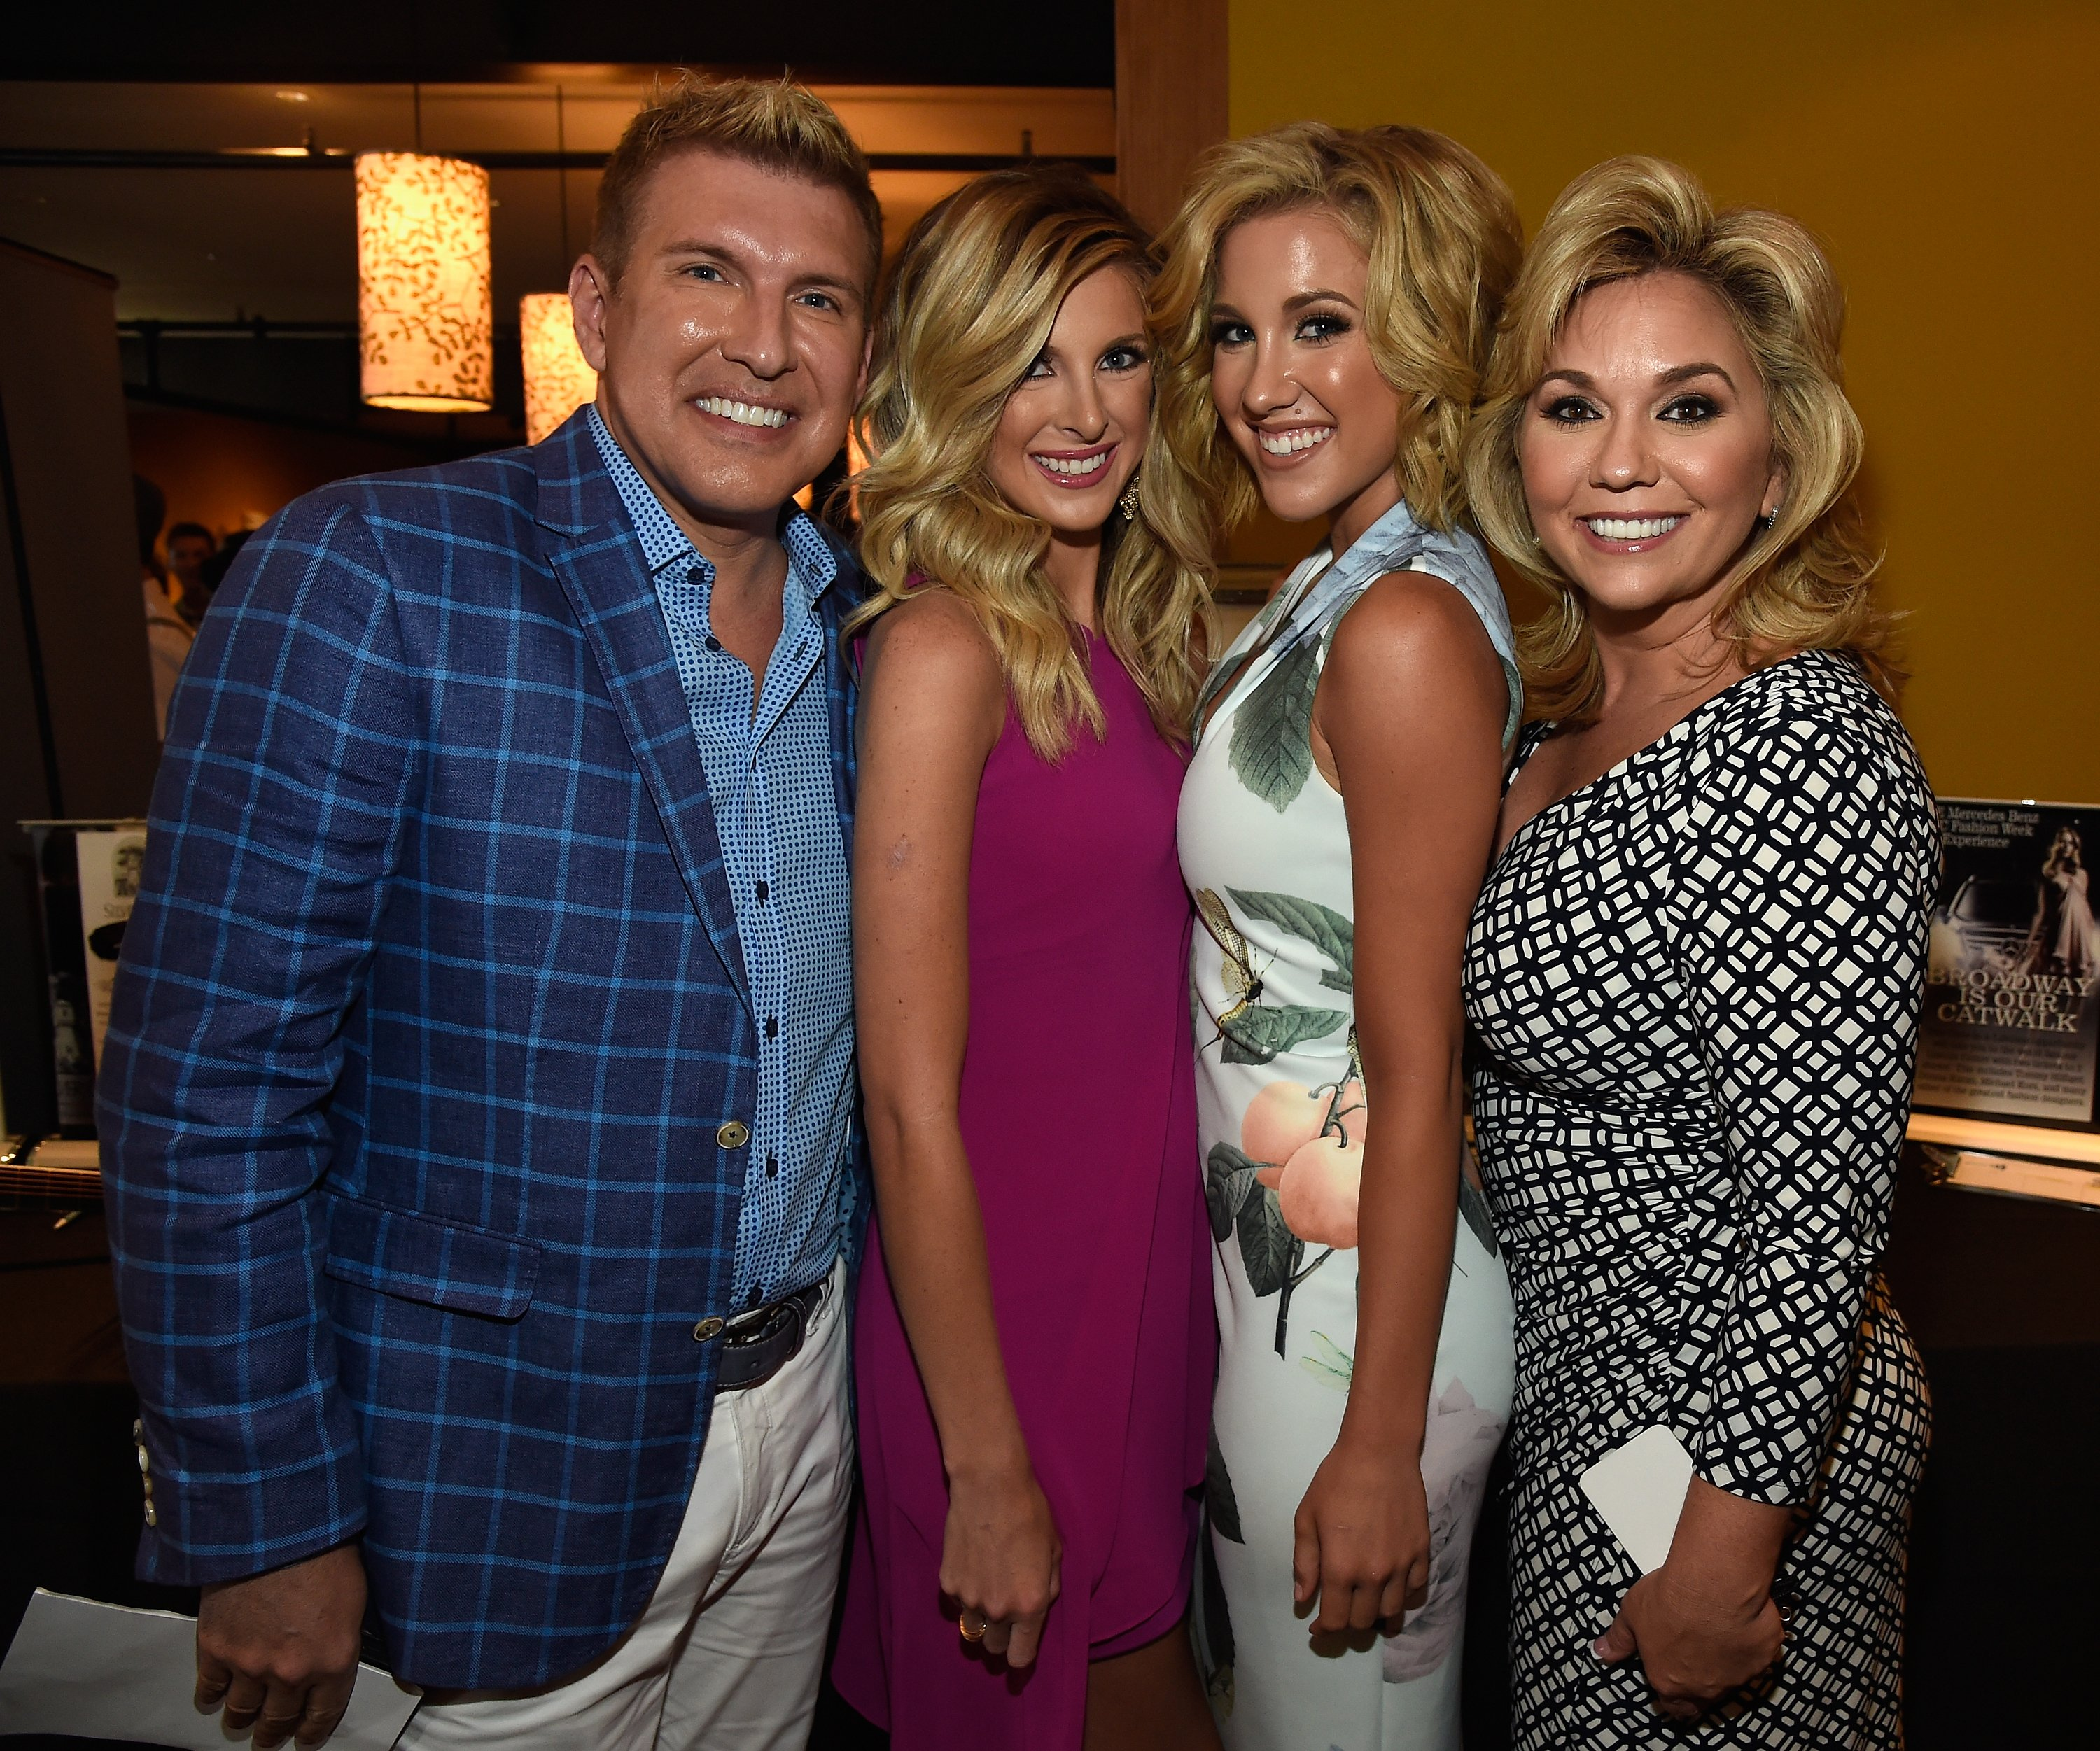 Todd, Lindsie, Savannah and Julie Chrisley at The Concert For Love And Acceptance in Nashville on June 12, 2015 | Getty Images